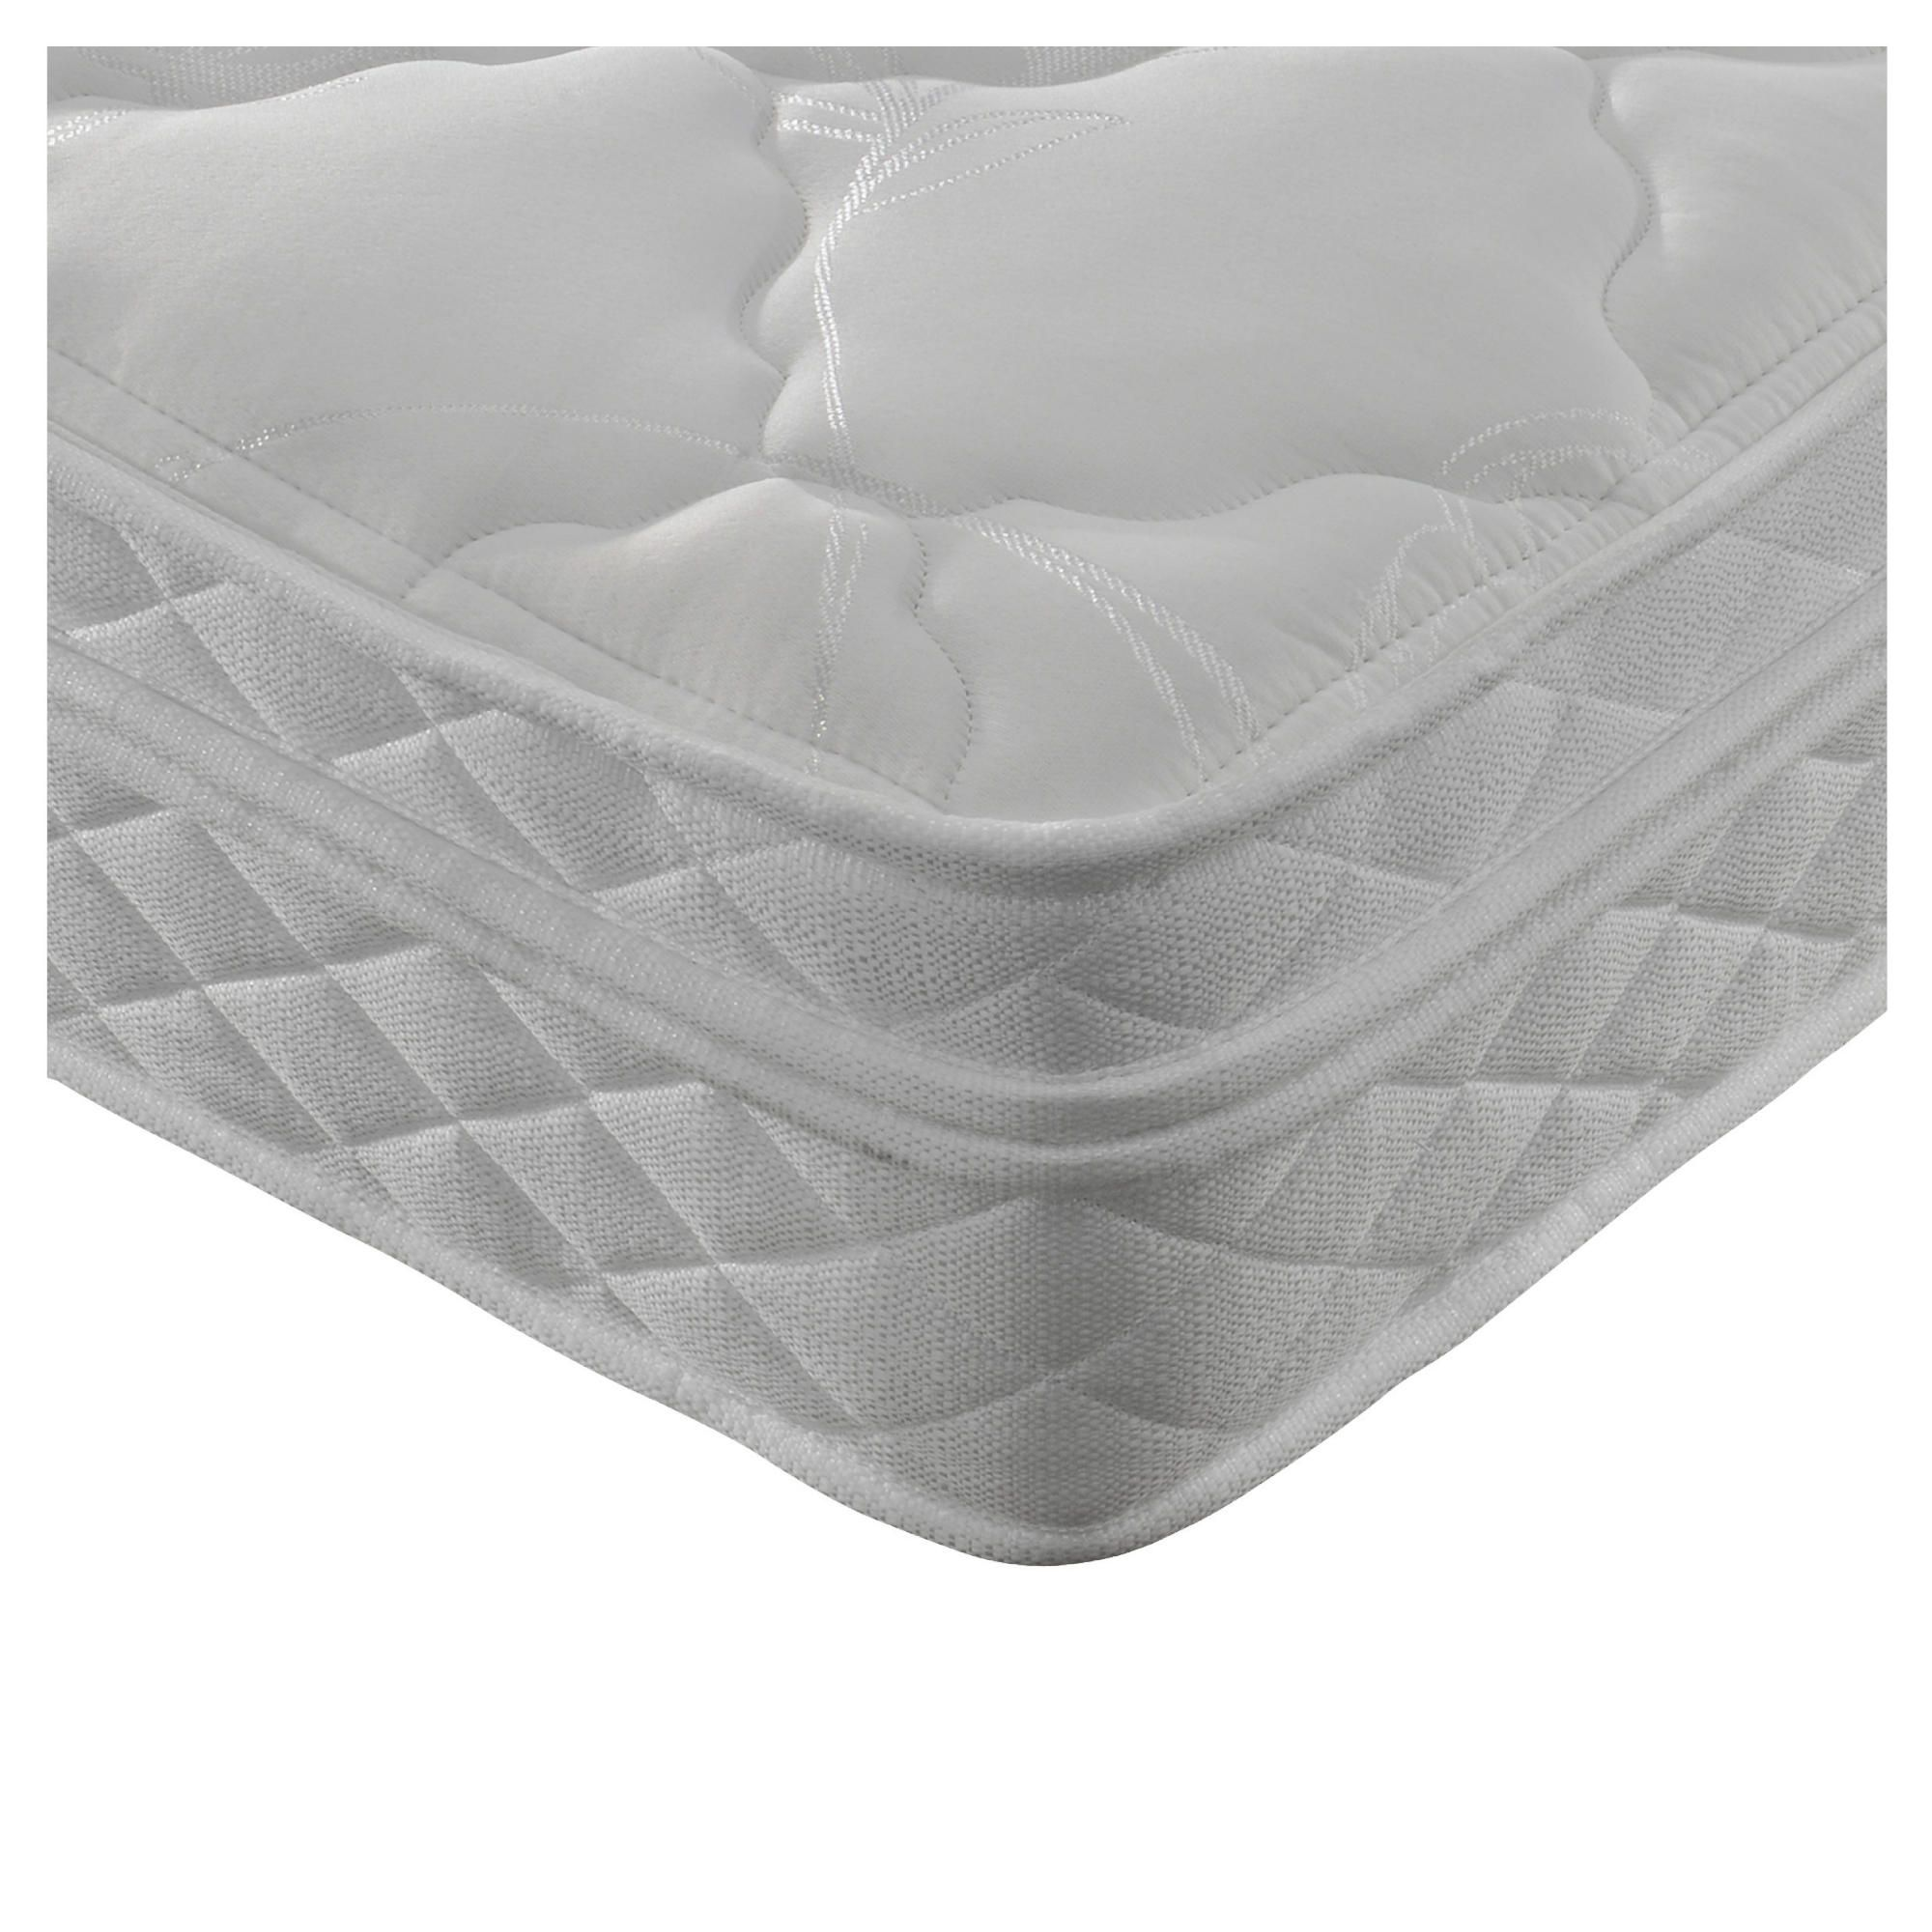 Thickness Double And King Size From Silentnight Bed Mattress Sale